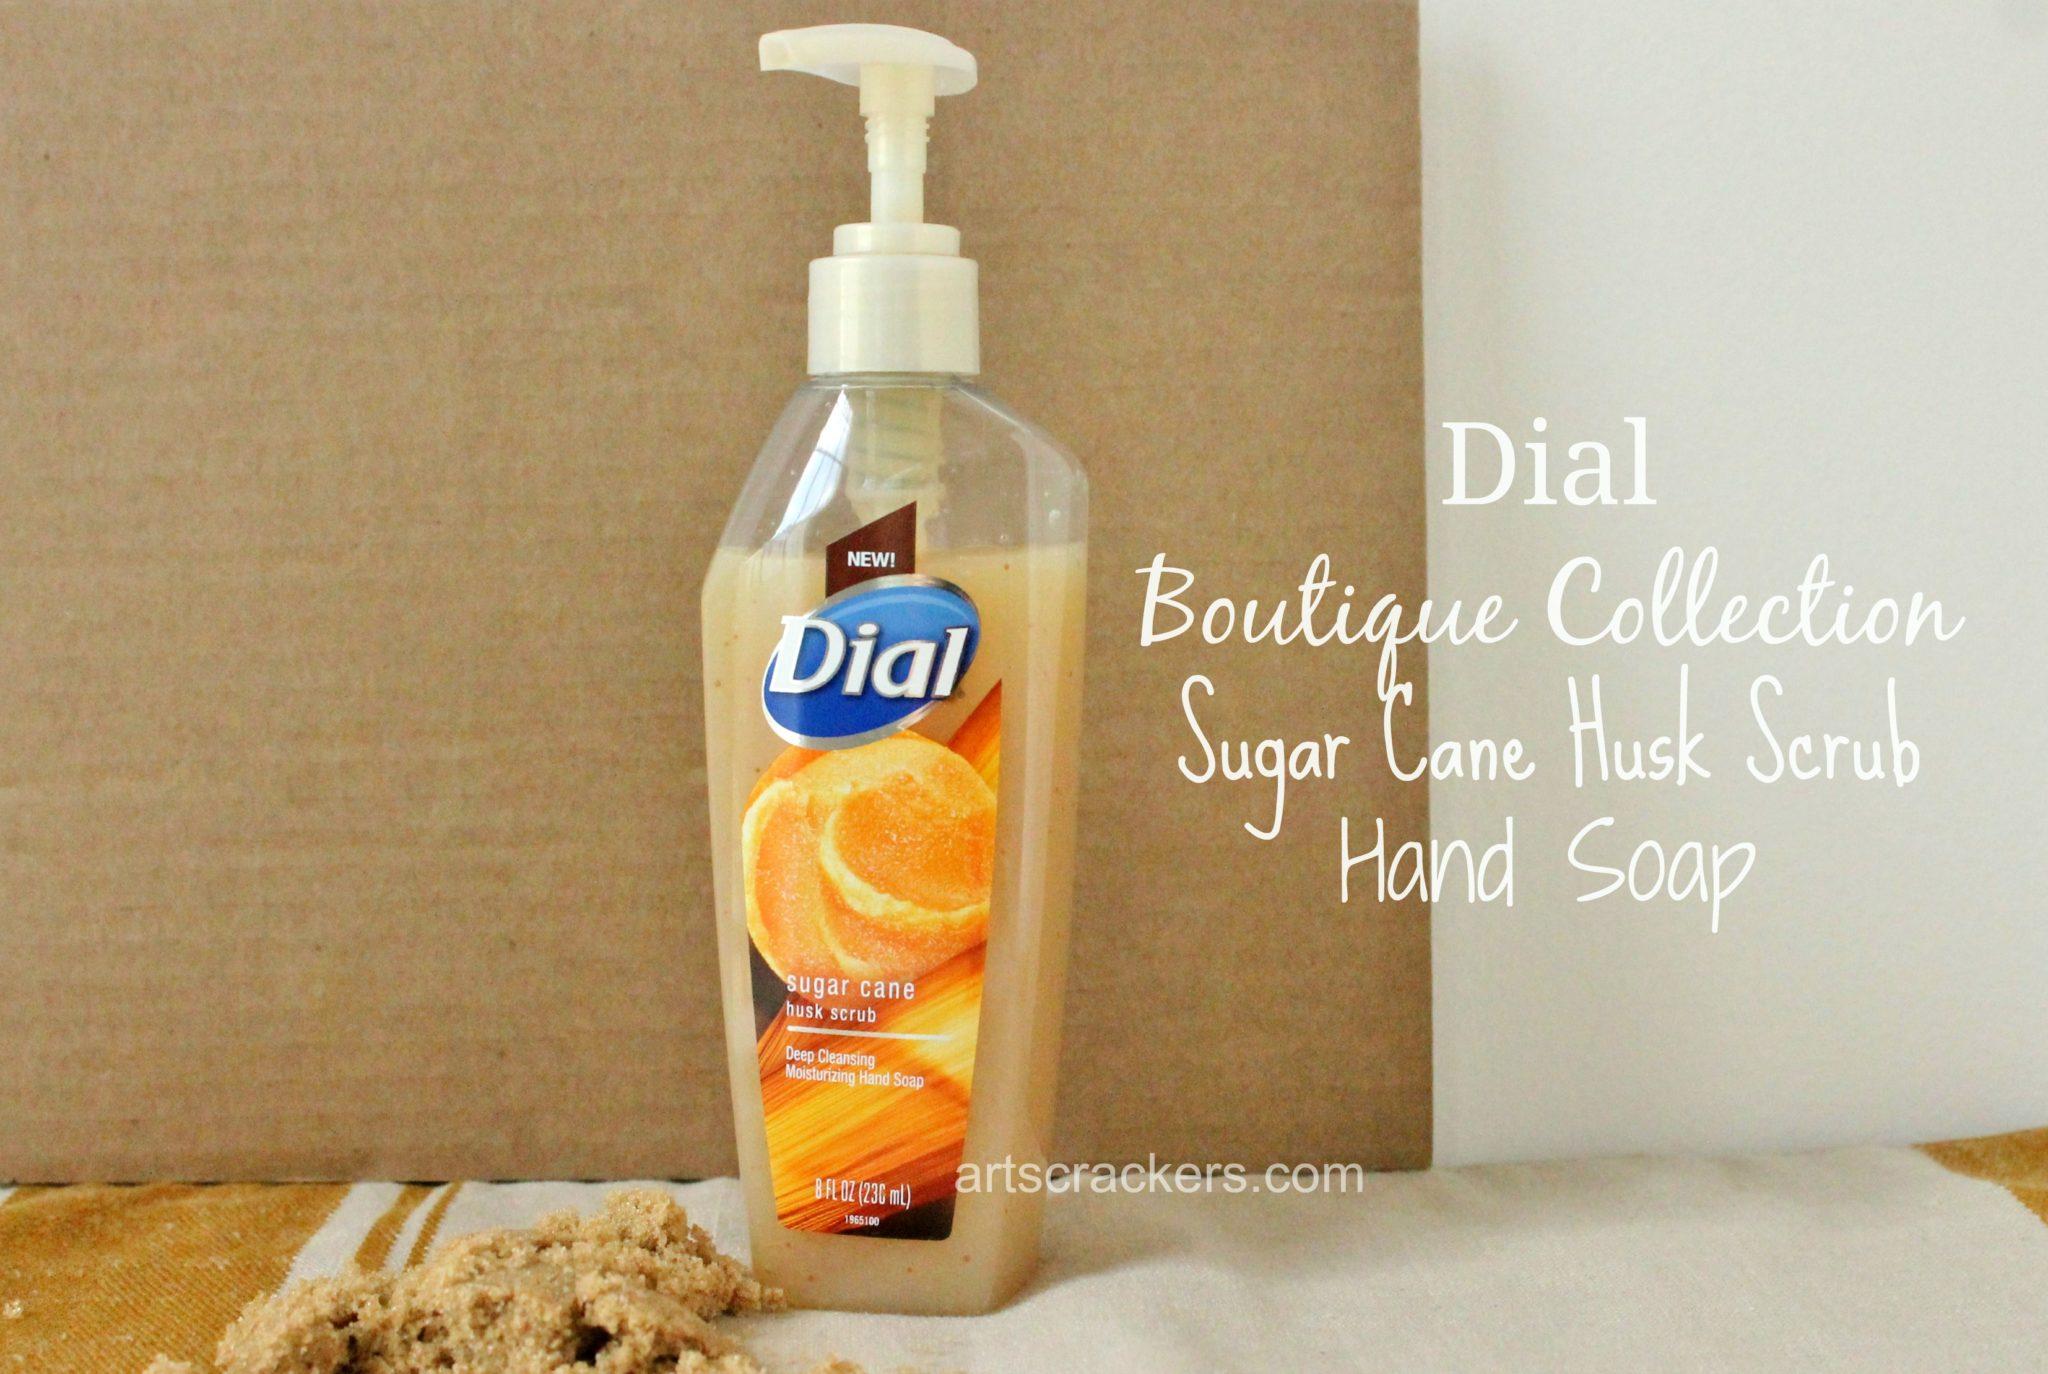 Dial Sugar Cane Husk Hand Soap. Click the picture to read the review.